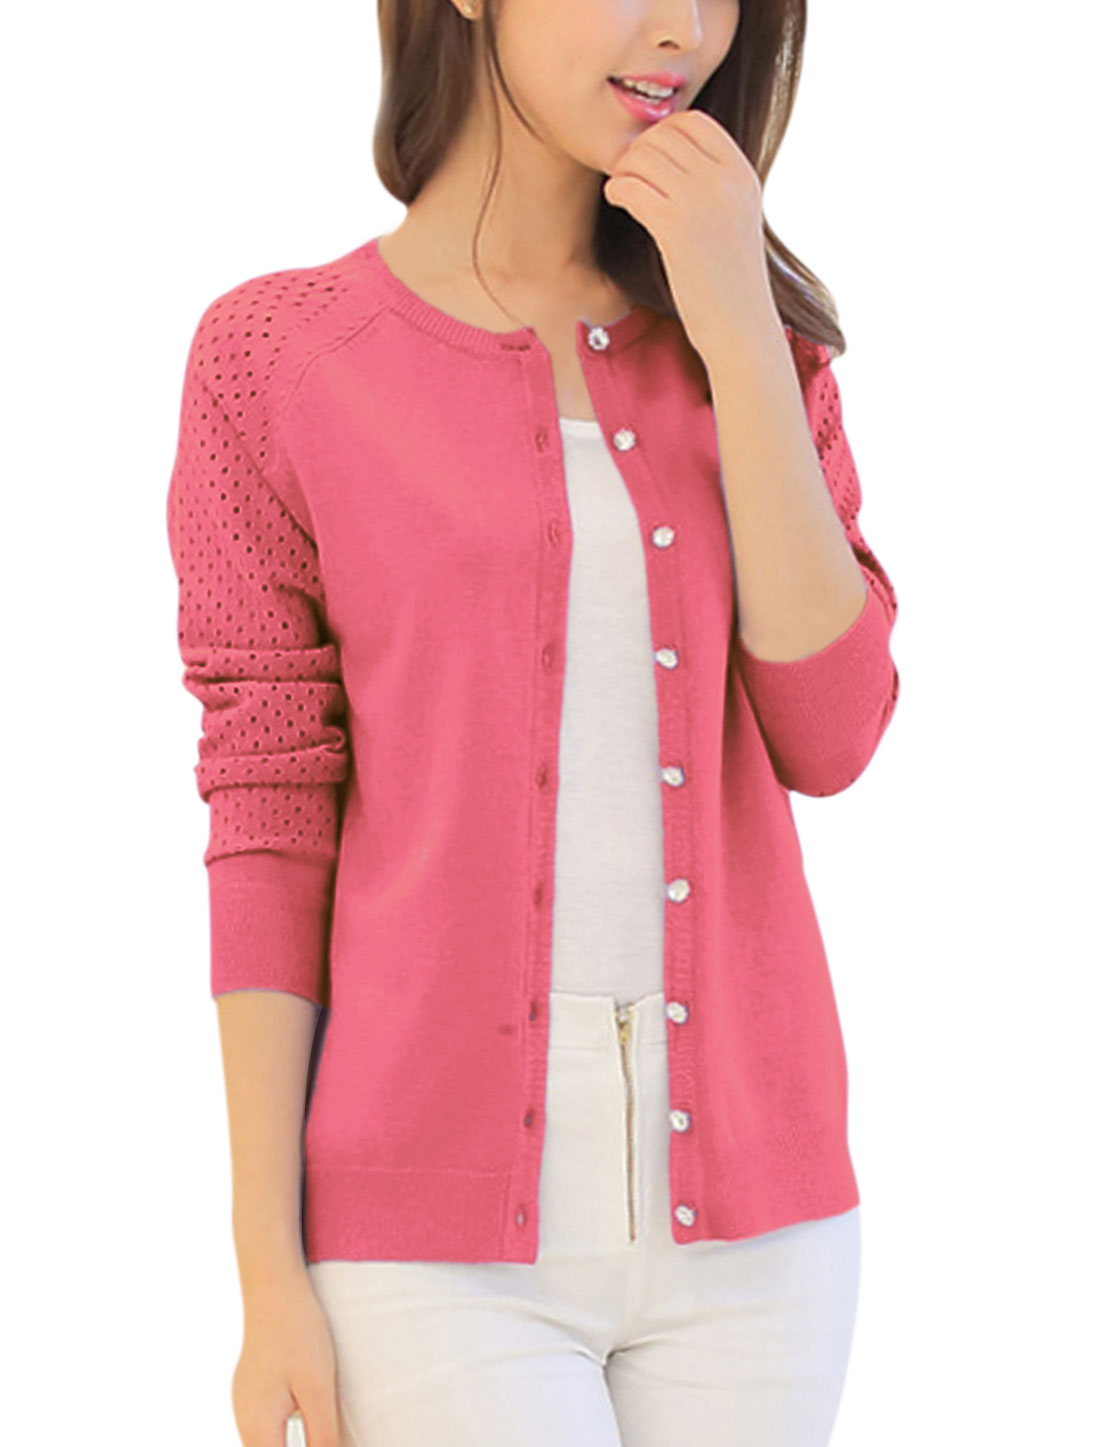 Lady Long Raglan Sleeve Button Down Hollow Out Design Knit Cardigan Fuchsia XS